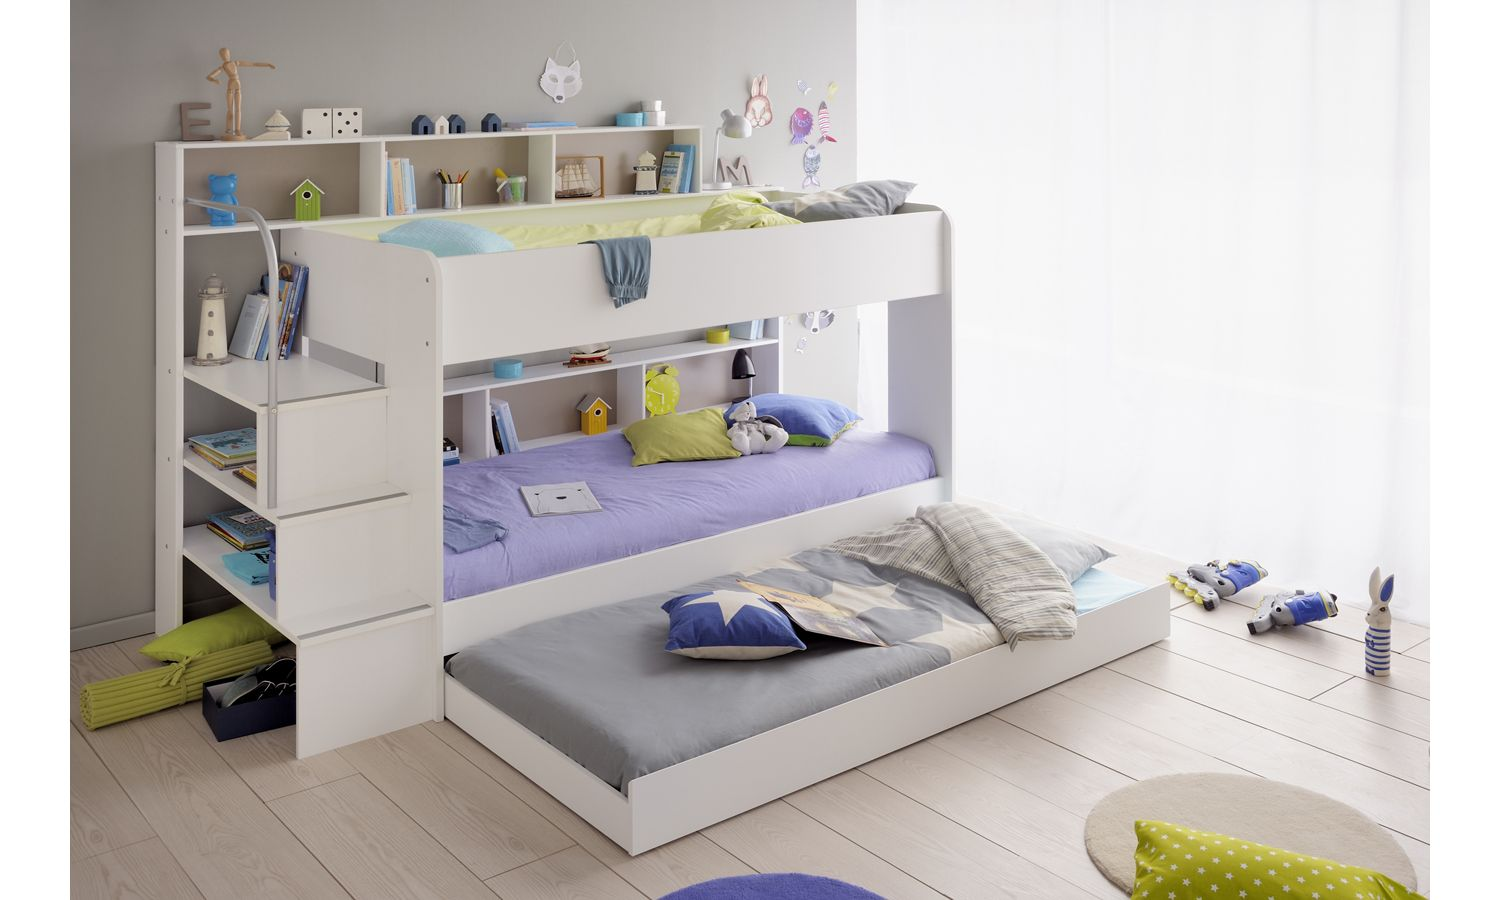 White Bibop 2 Bunk Bed With Images White Wooden Bunk Beds